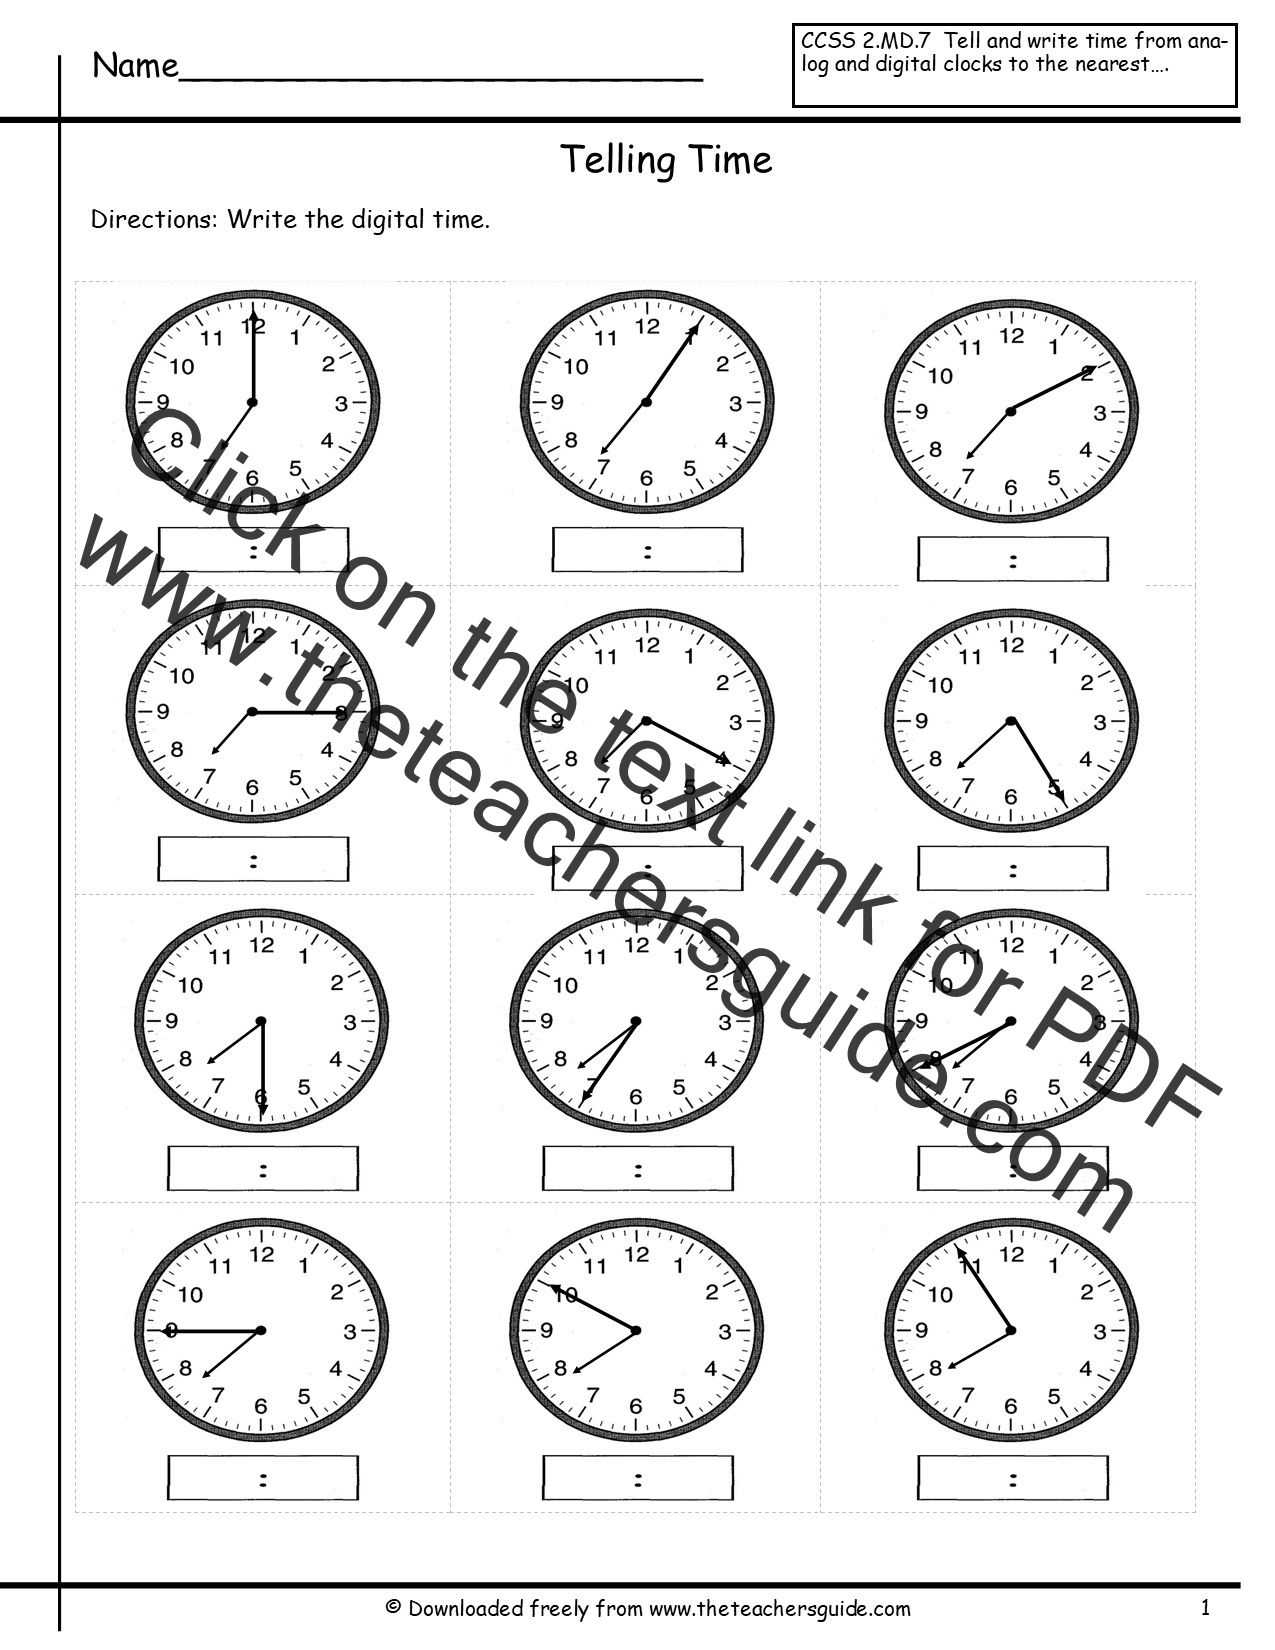 Aldiablosus  Unique Telling Time Worksheets From The Teachers Guide With Magnificent Telling Time Worksheets With Delectable Middle School Science Worksheet Also Mad Minute Subtraction Worksheets In Addition Geometry Worksheets Answer Key And Advertisement Analysis Worksheet As Well As Series And Parallel Circuits Worksheets Additionally Free Kindergarten Worksheets Math From Theteachersguidecom With Aldiablosus  Magnificent Telling Time Worksheets From The Teachers Guide With Delectable Telling Time Worksheets And Unique Middle School Science Worksheet Also Mad Minute Subtraction Worksheets In Addition Geometry Worksheets Answer Key From Theteachersguidecom